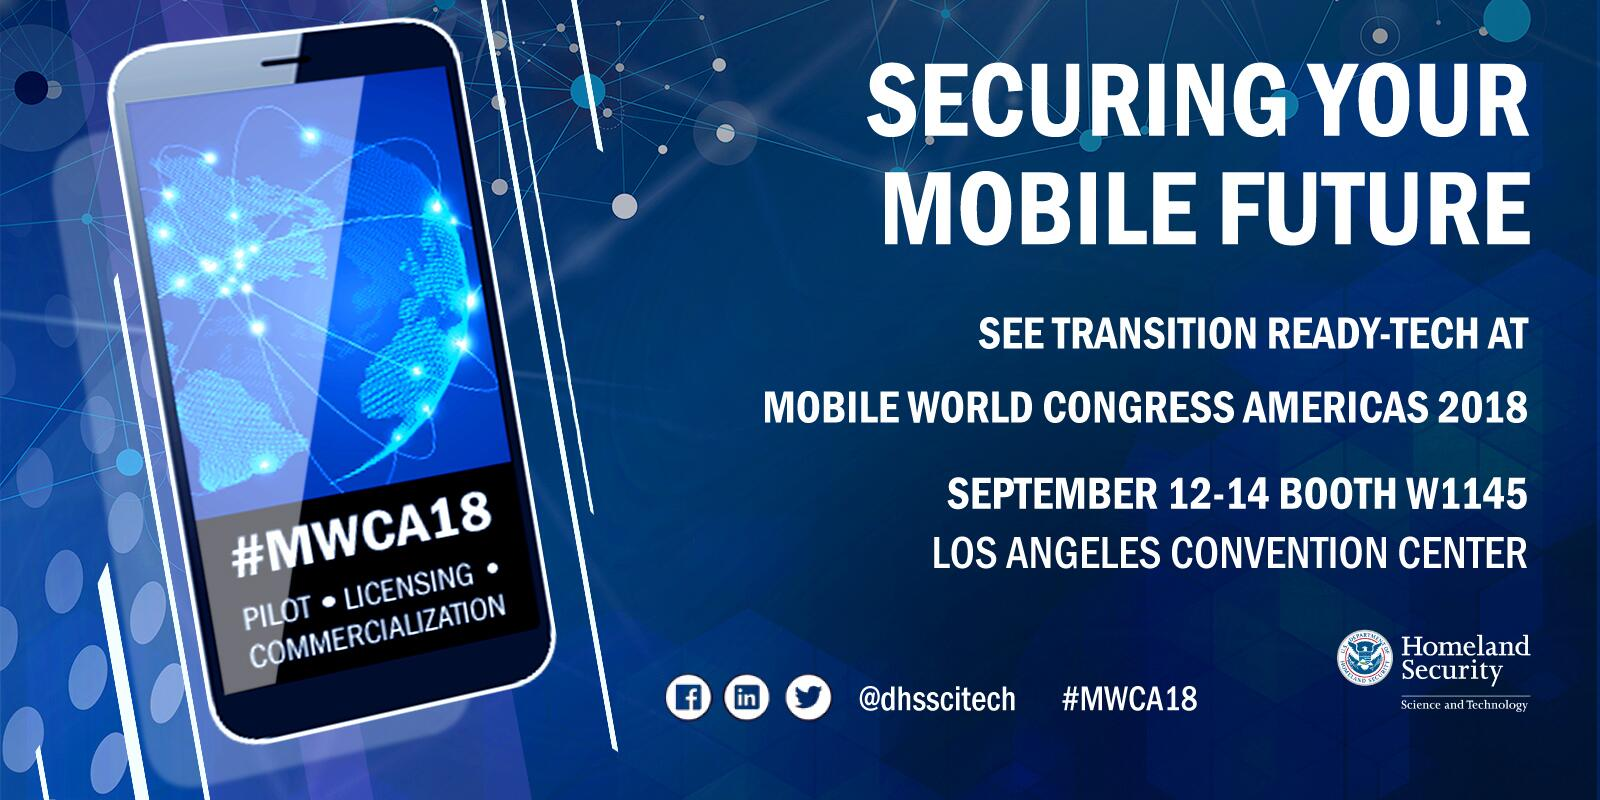 Securinig Your Mobile Future, See transition ready-tech for pilots, licensing and commercialization at Mobile World Congress Americas 2018; September 12 - 14 in Booth W1145 Los Angeles Convention Center. Follow us on social media @dhsscitech #MWCA.